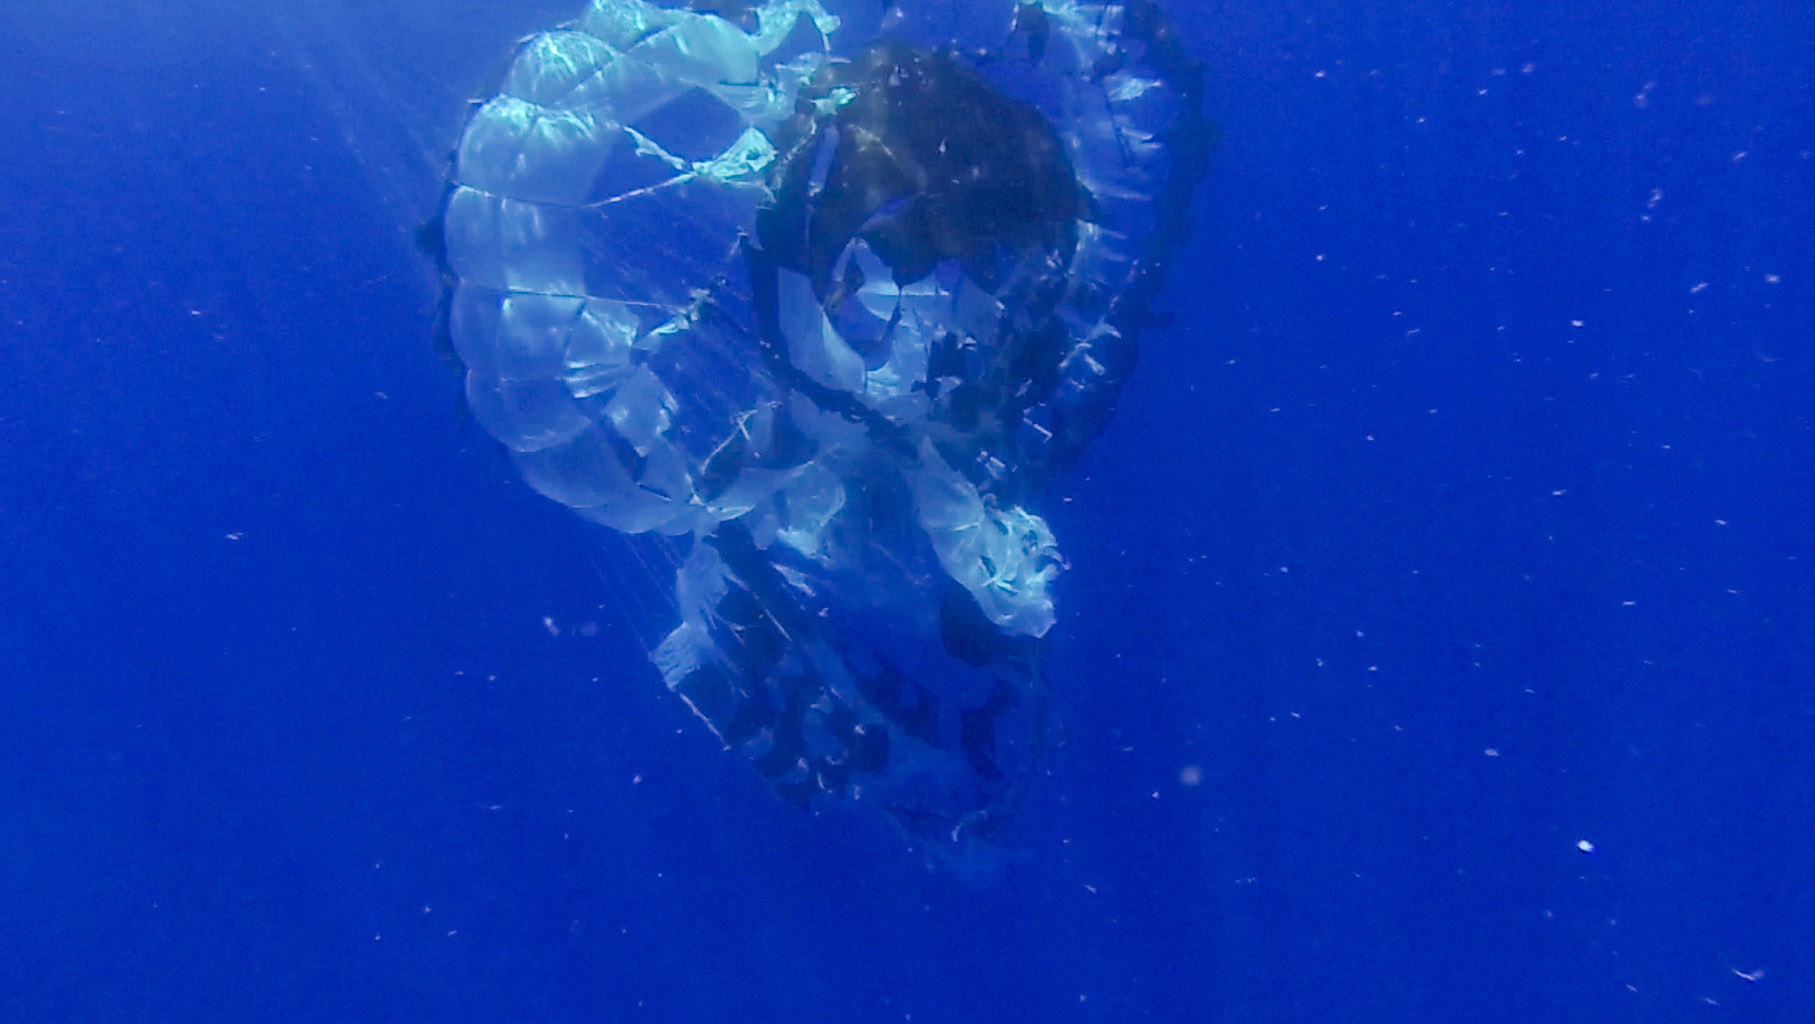 Tears are visible in the parachute from NASA's Supersonic Disk Sail Parachute, which did not deploy as expected. The photo was obtained by Navy divers during recovery of the LDSD test vehicle and parachute.